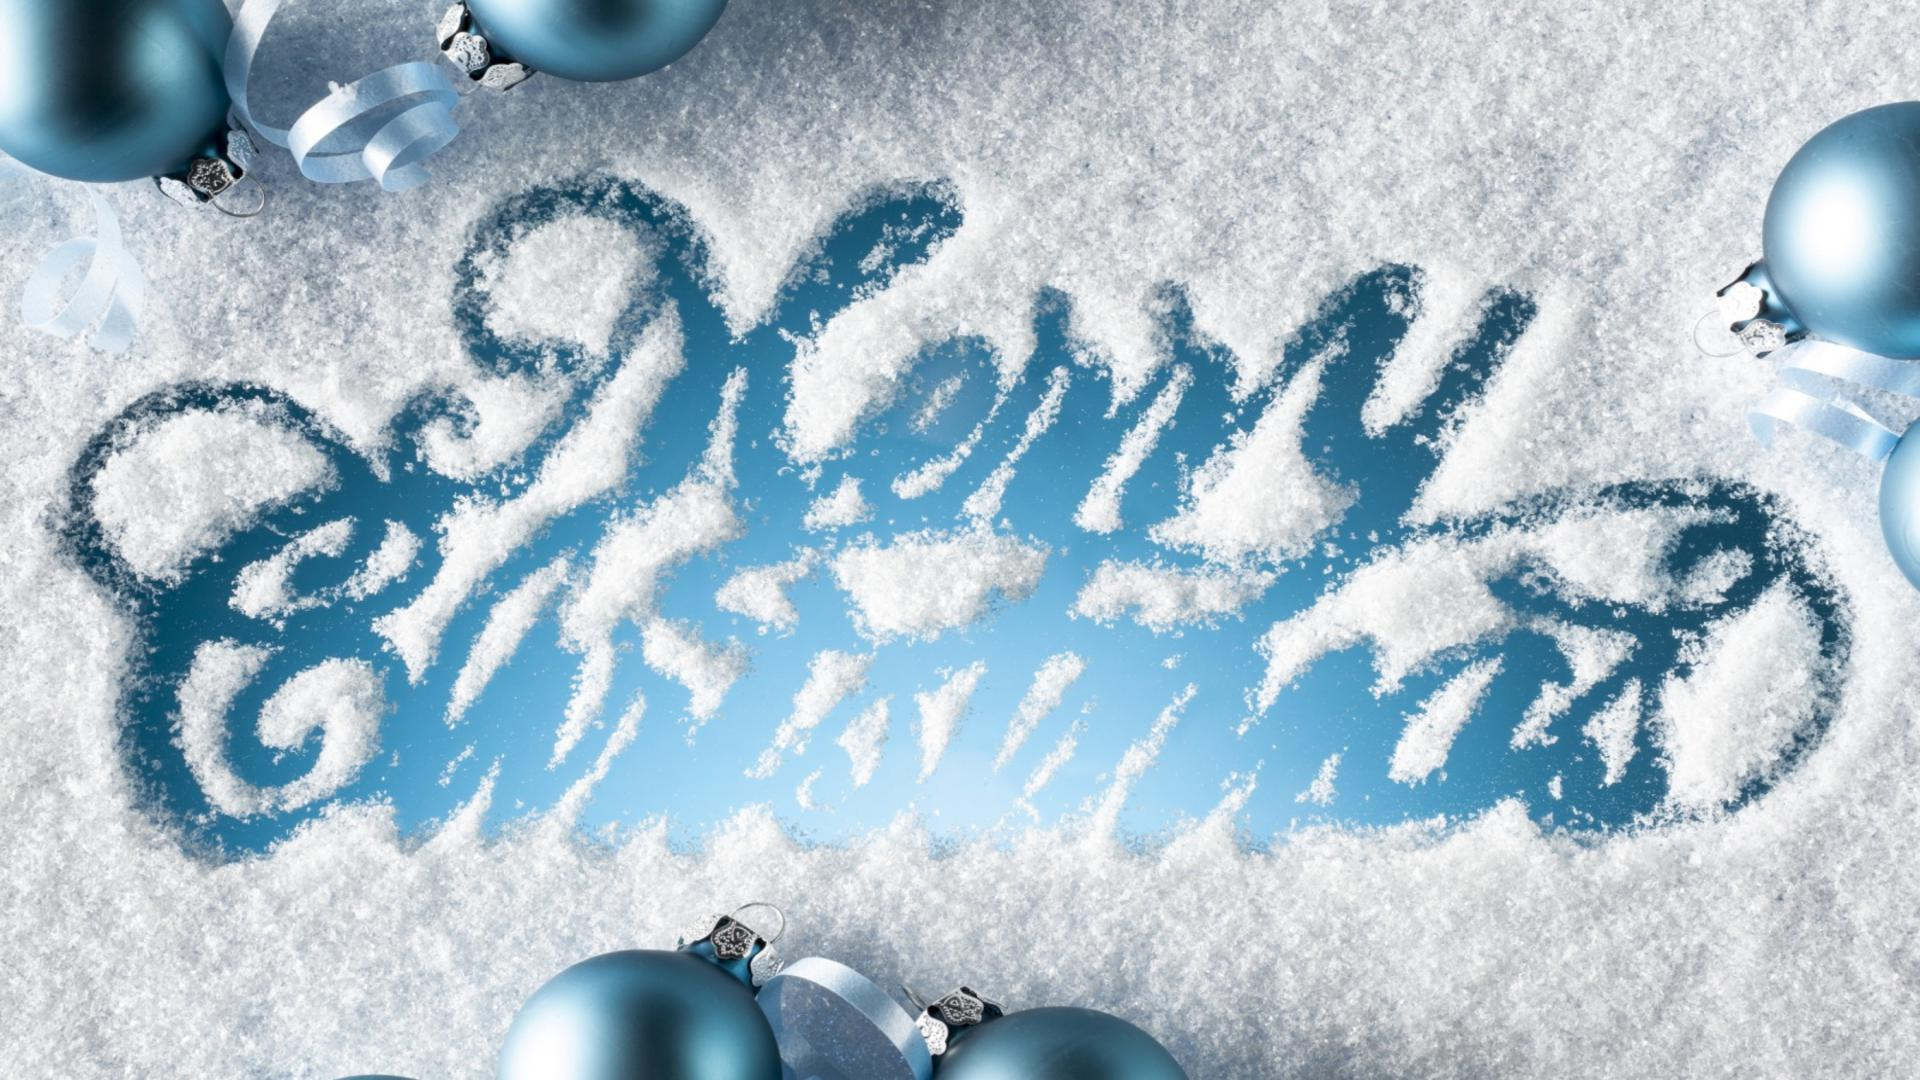 Merry Christmas 2012 HD Wallpaper 12